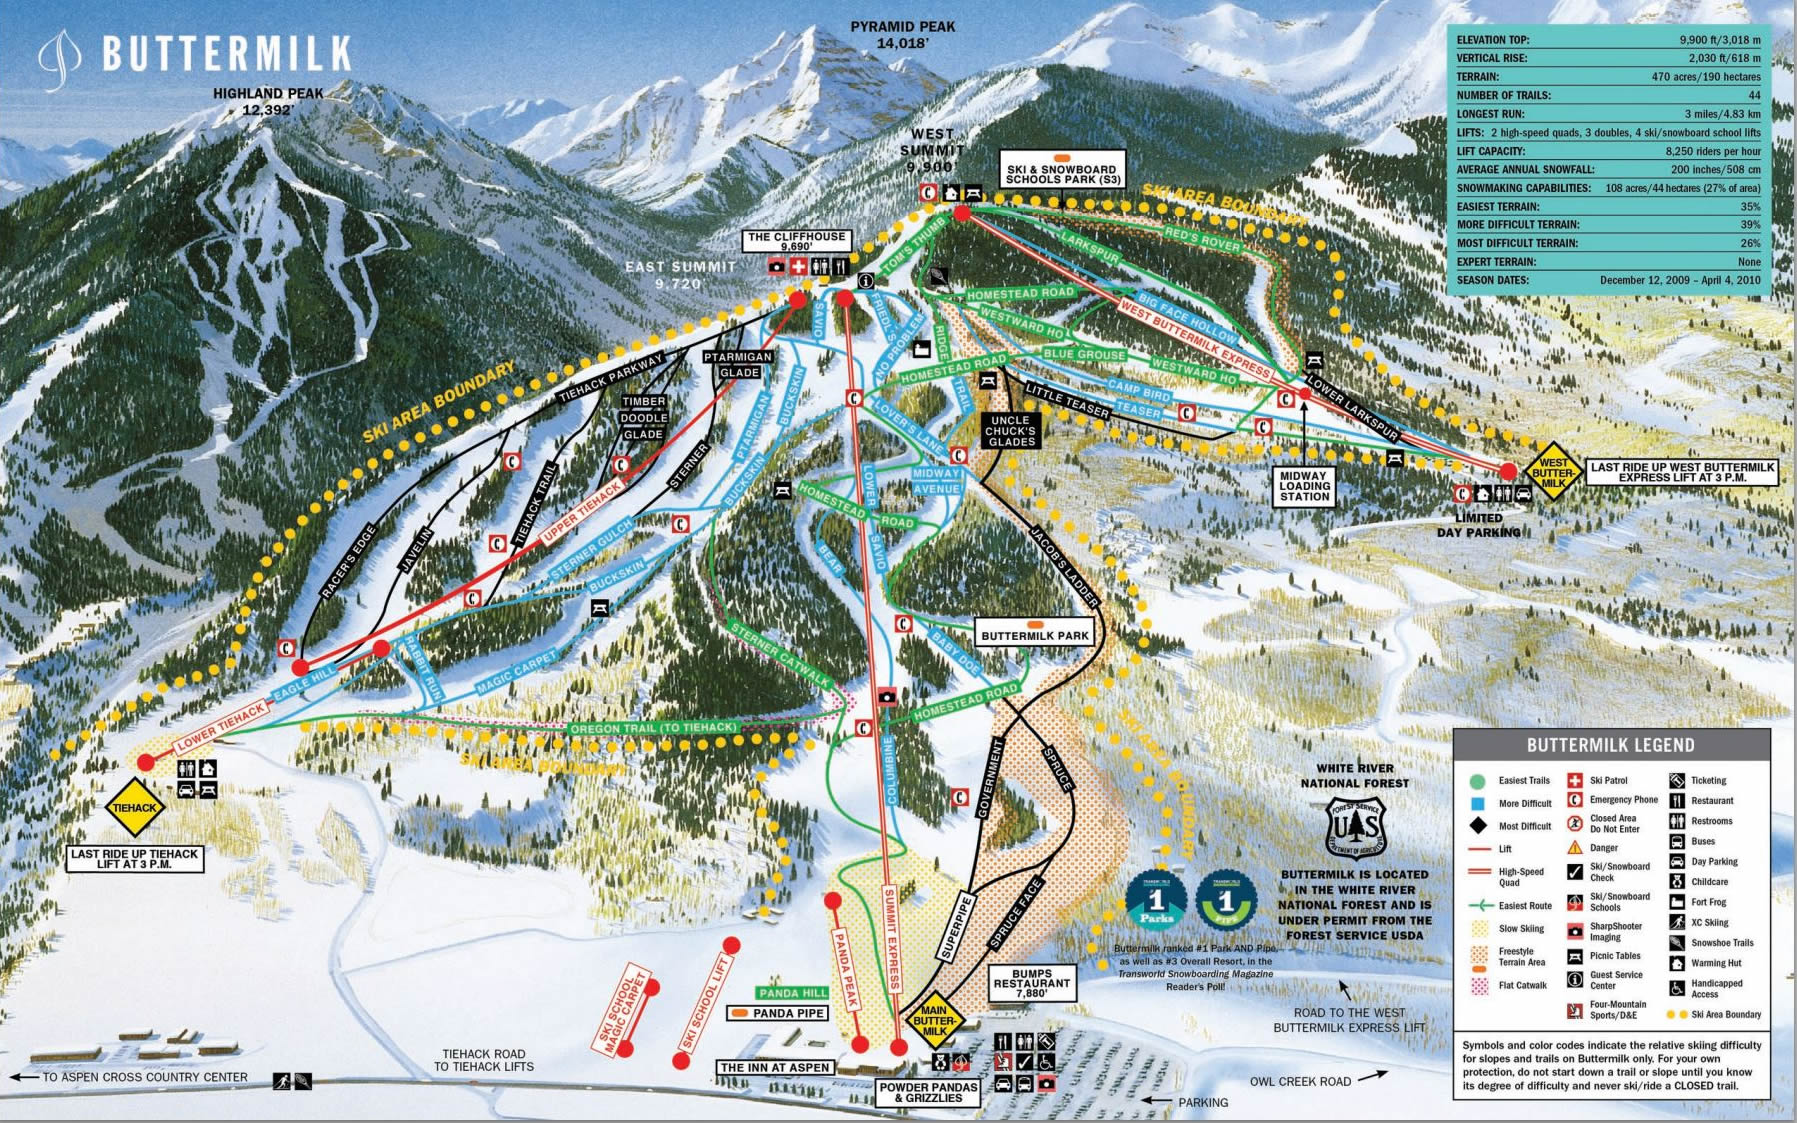 Mapa Pistas Buttermilk